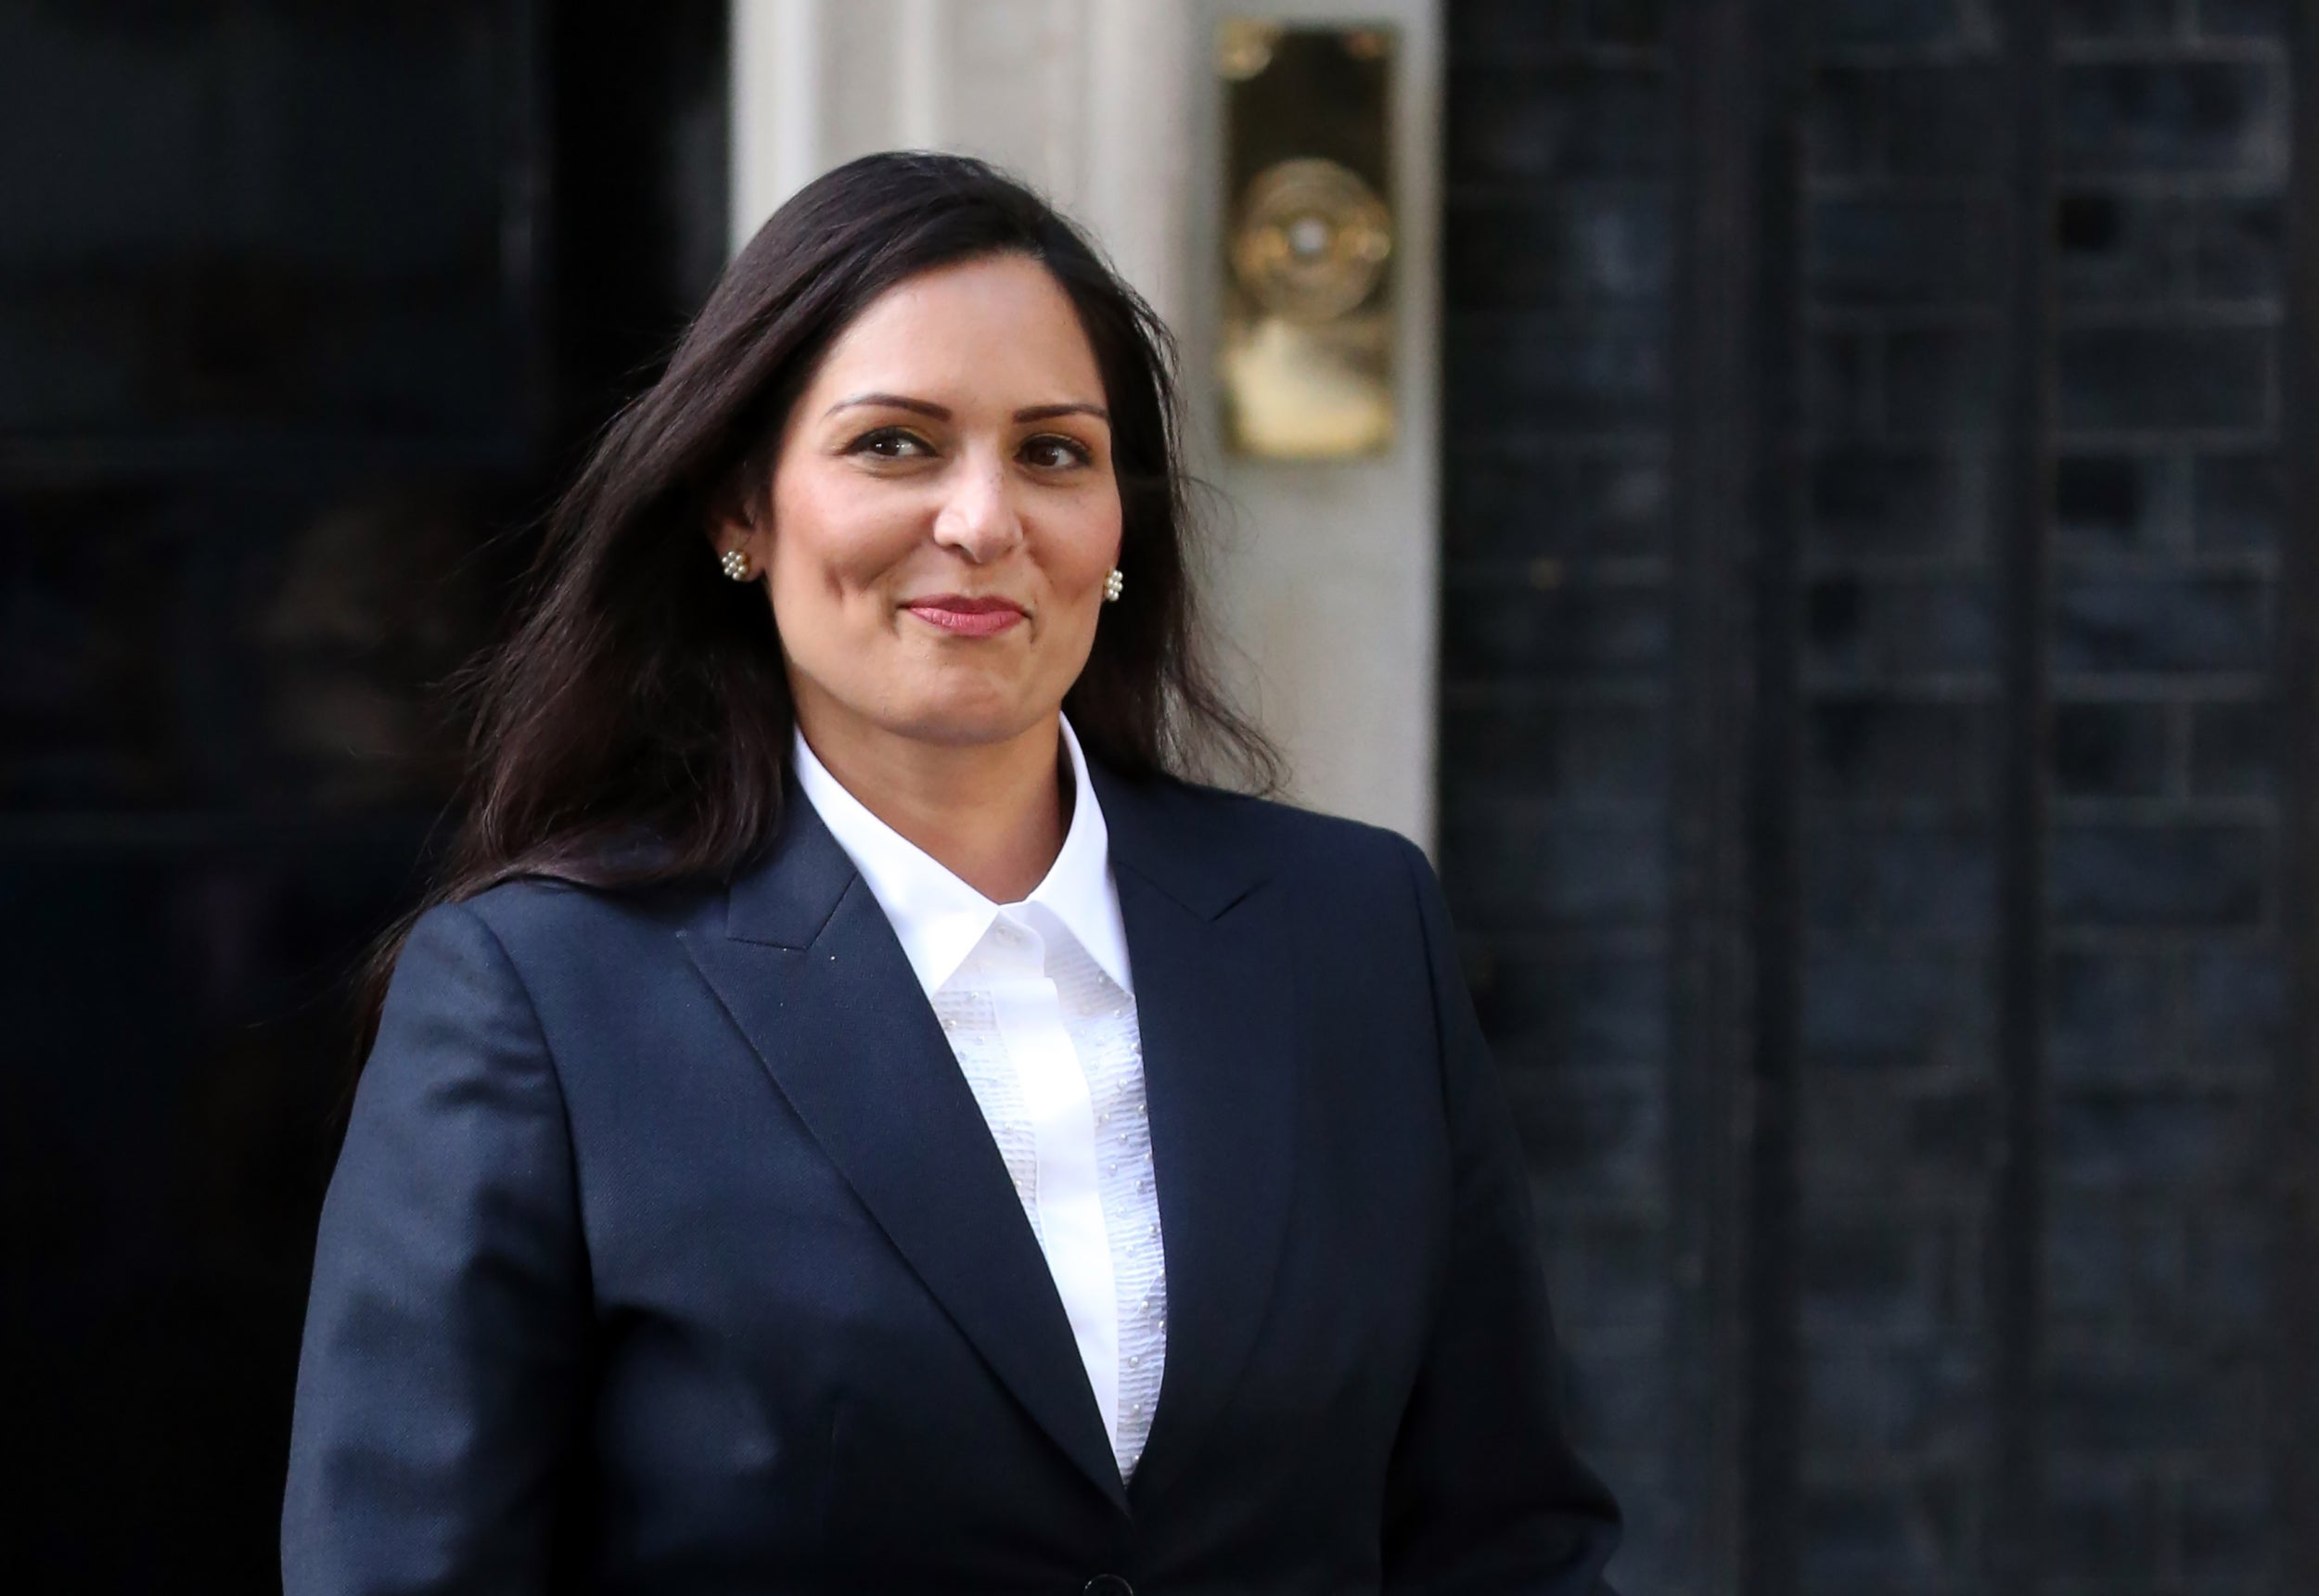 Priti Patel denies previous support for death penalty as she says she wants criminals to 'literally feel terror'